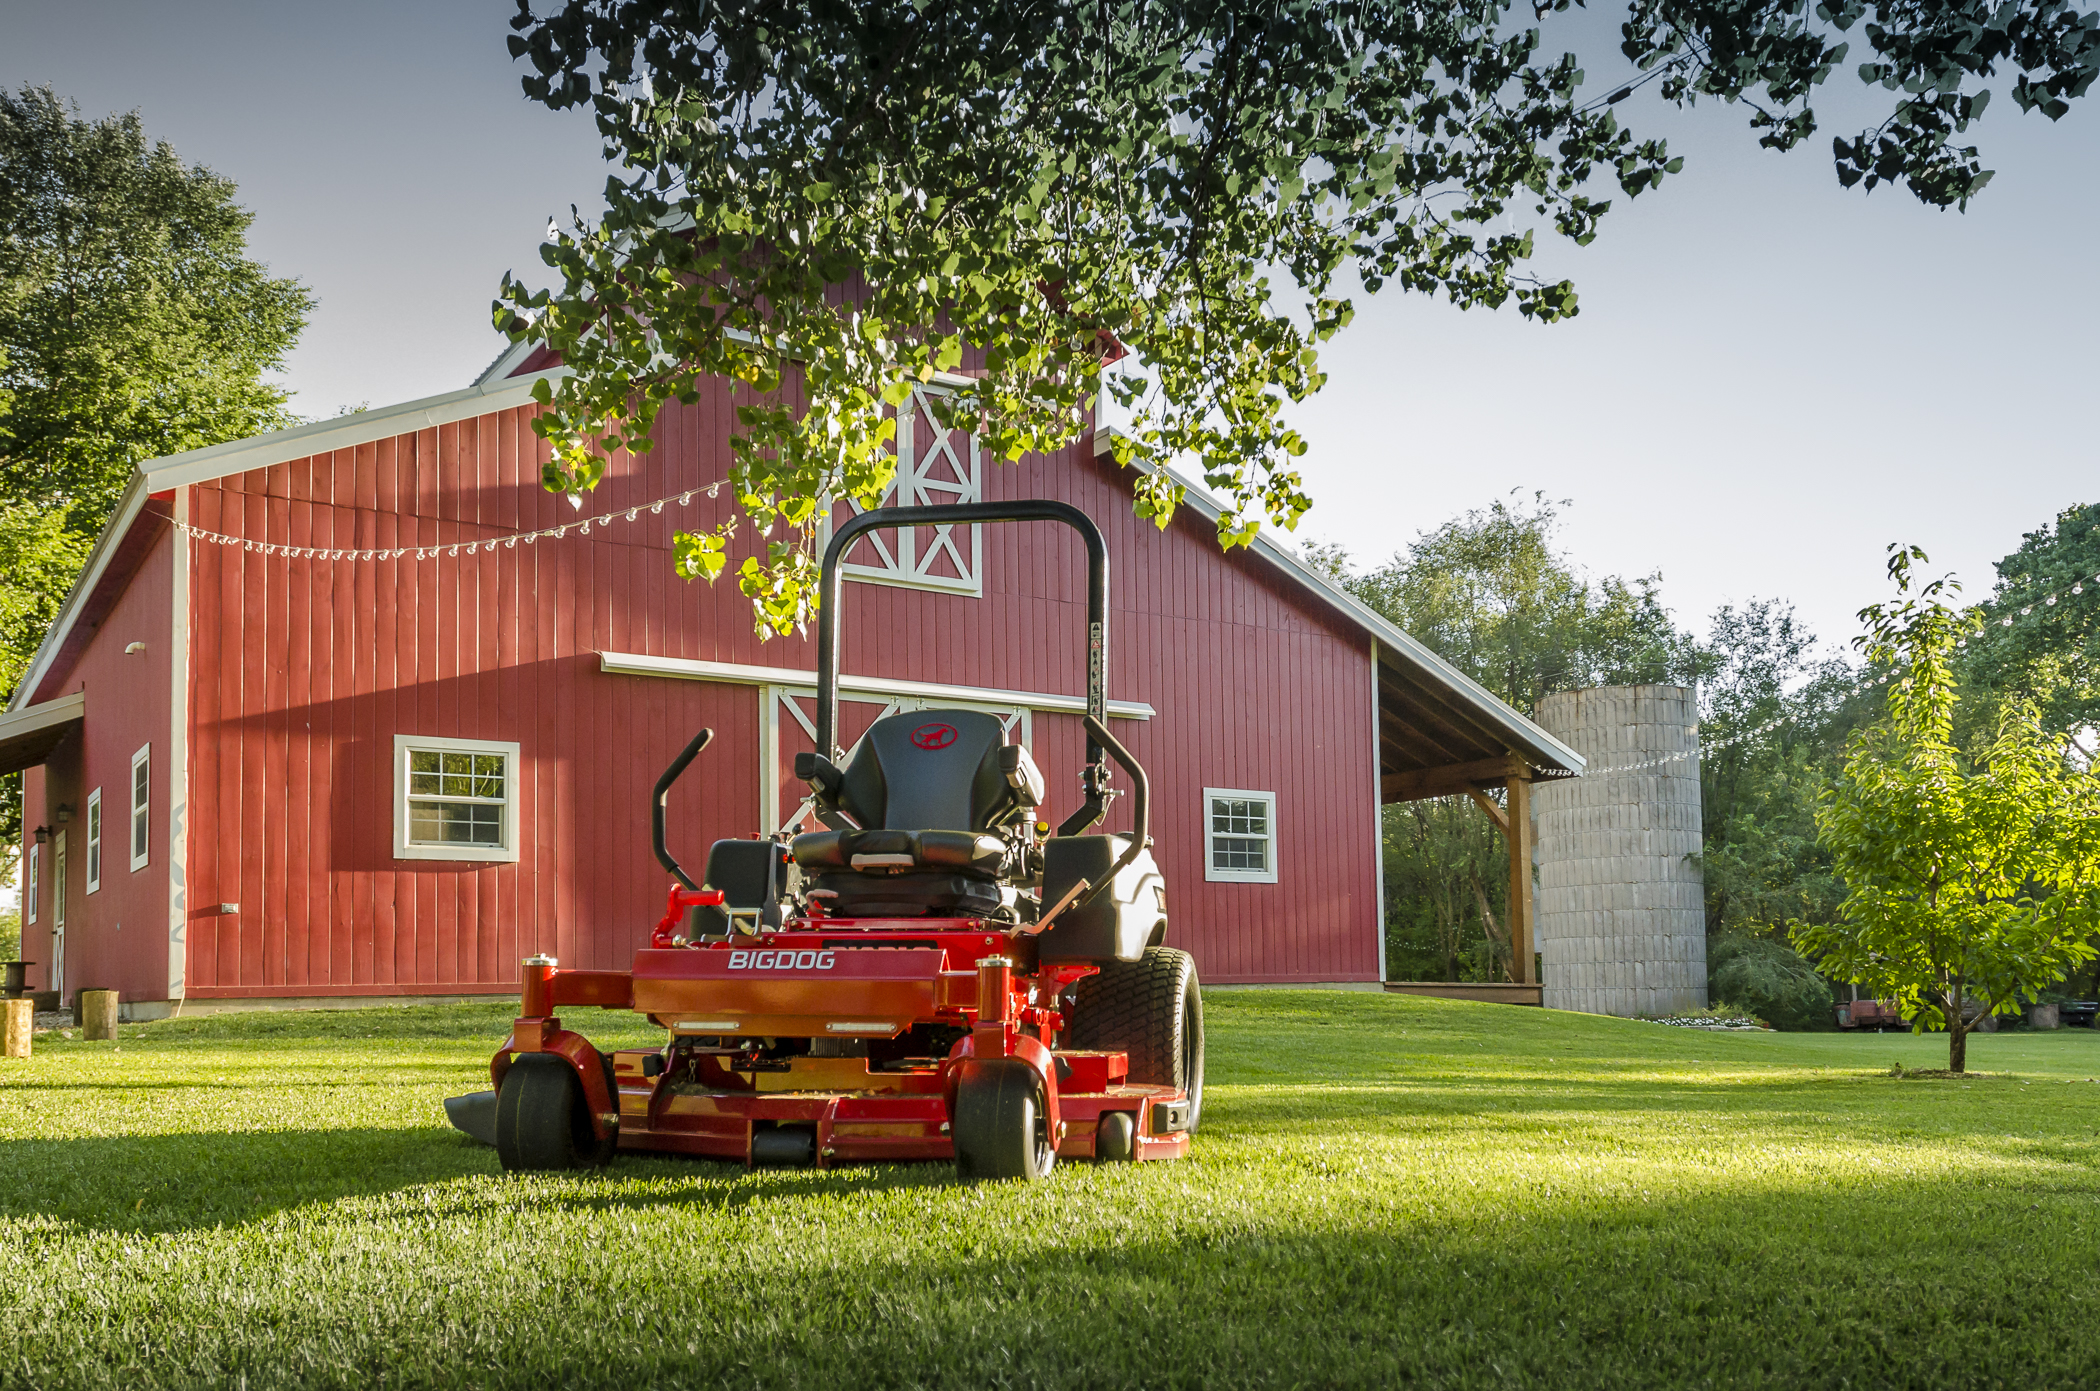 BigDog Mower Co  reflects on its evolution during its 10th